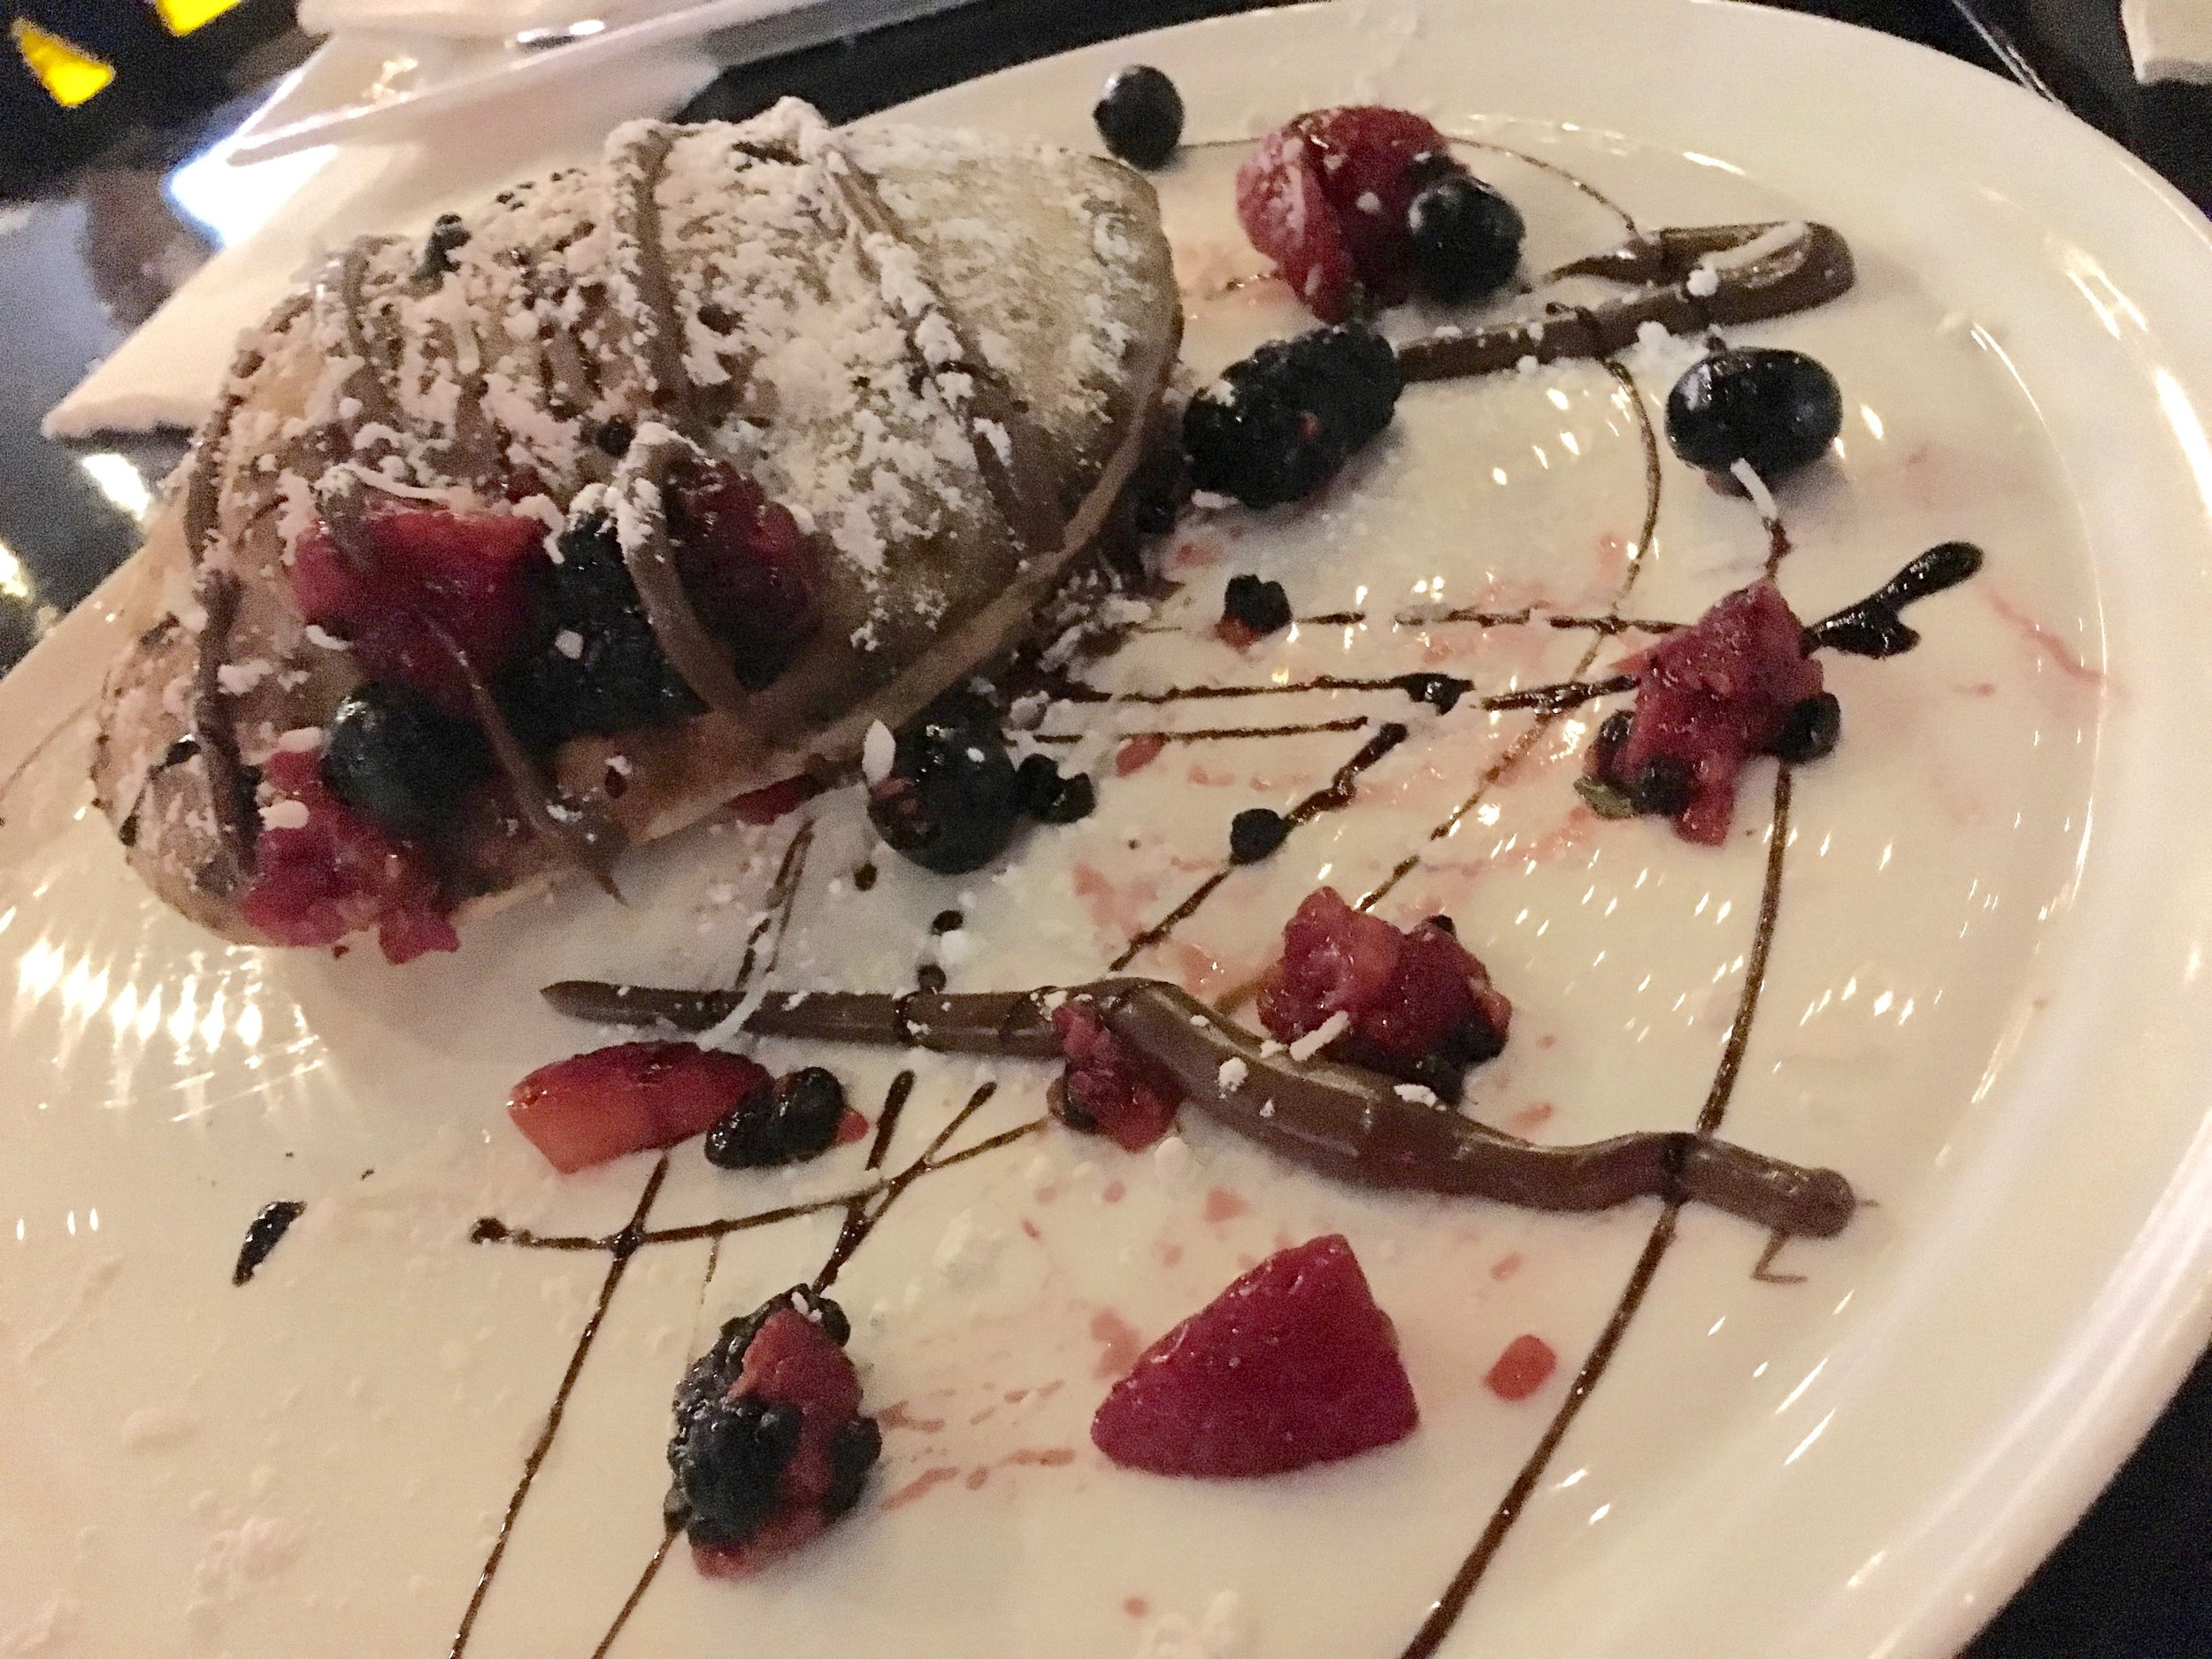 A Nutella calzone. This was good, yet the Drowning Gelato -- vanilla in a cup of robust espresso -- was amazing.